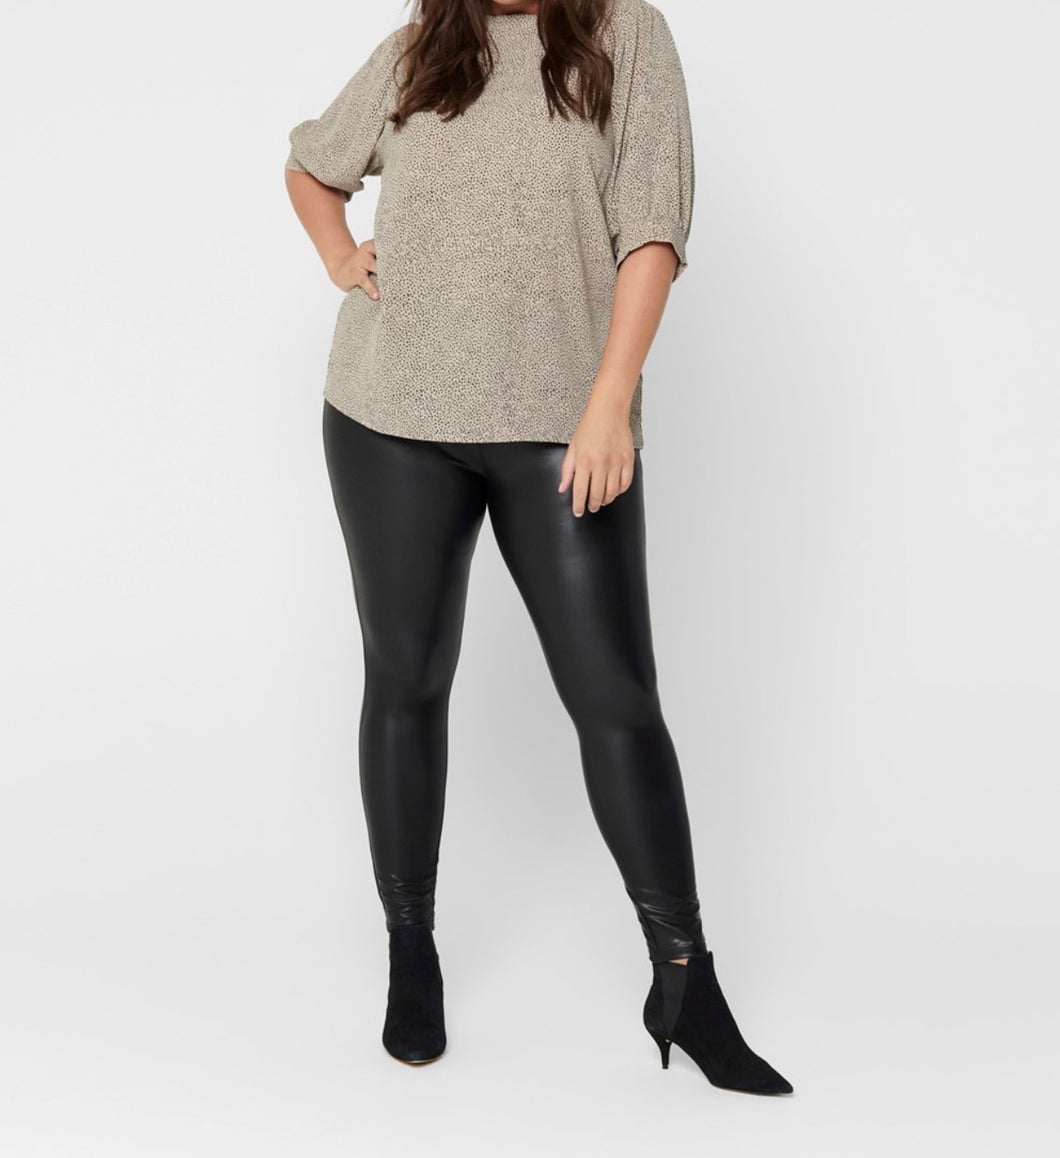 Coated shiny leggings - Curve Range